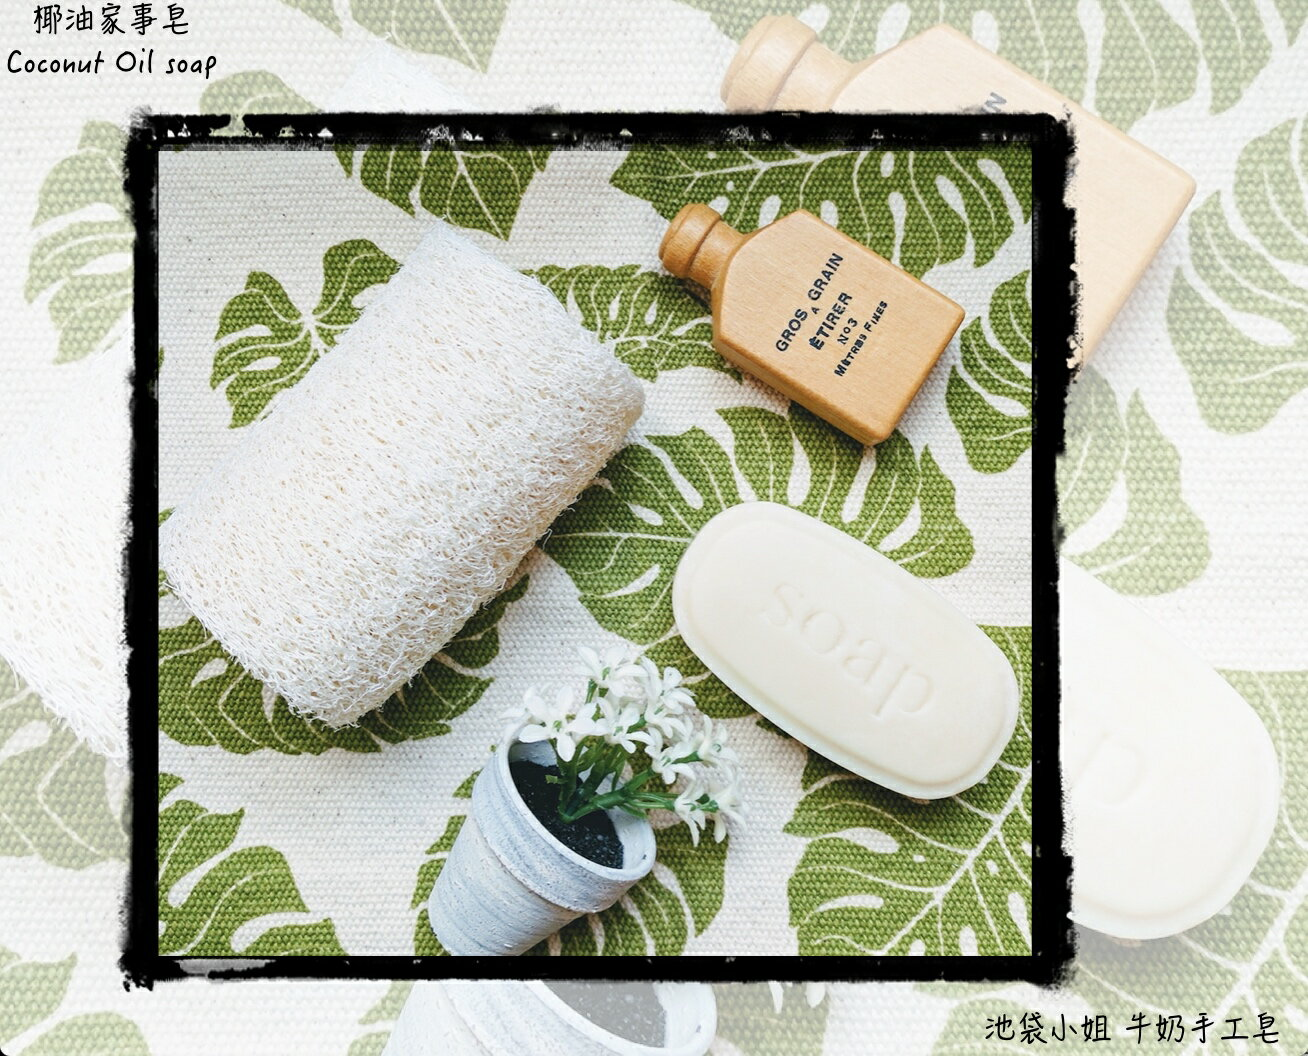 [米香手工牛奶皂] 椰油家事皂 Coconut oil Milk Soap - cleansing and laundry